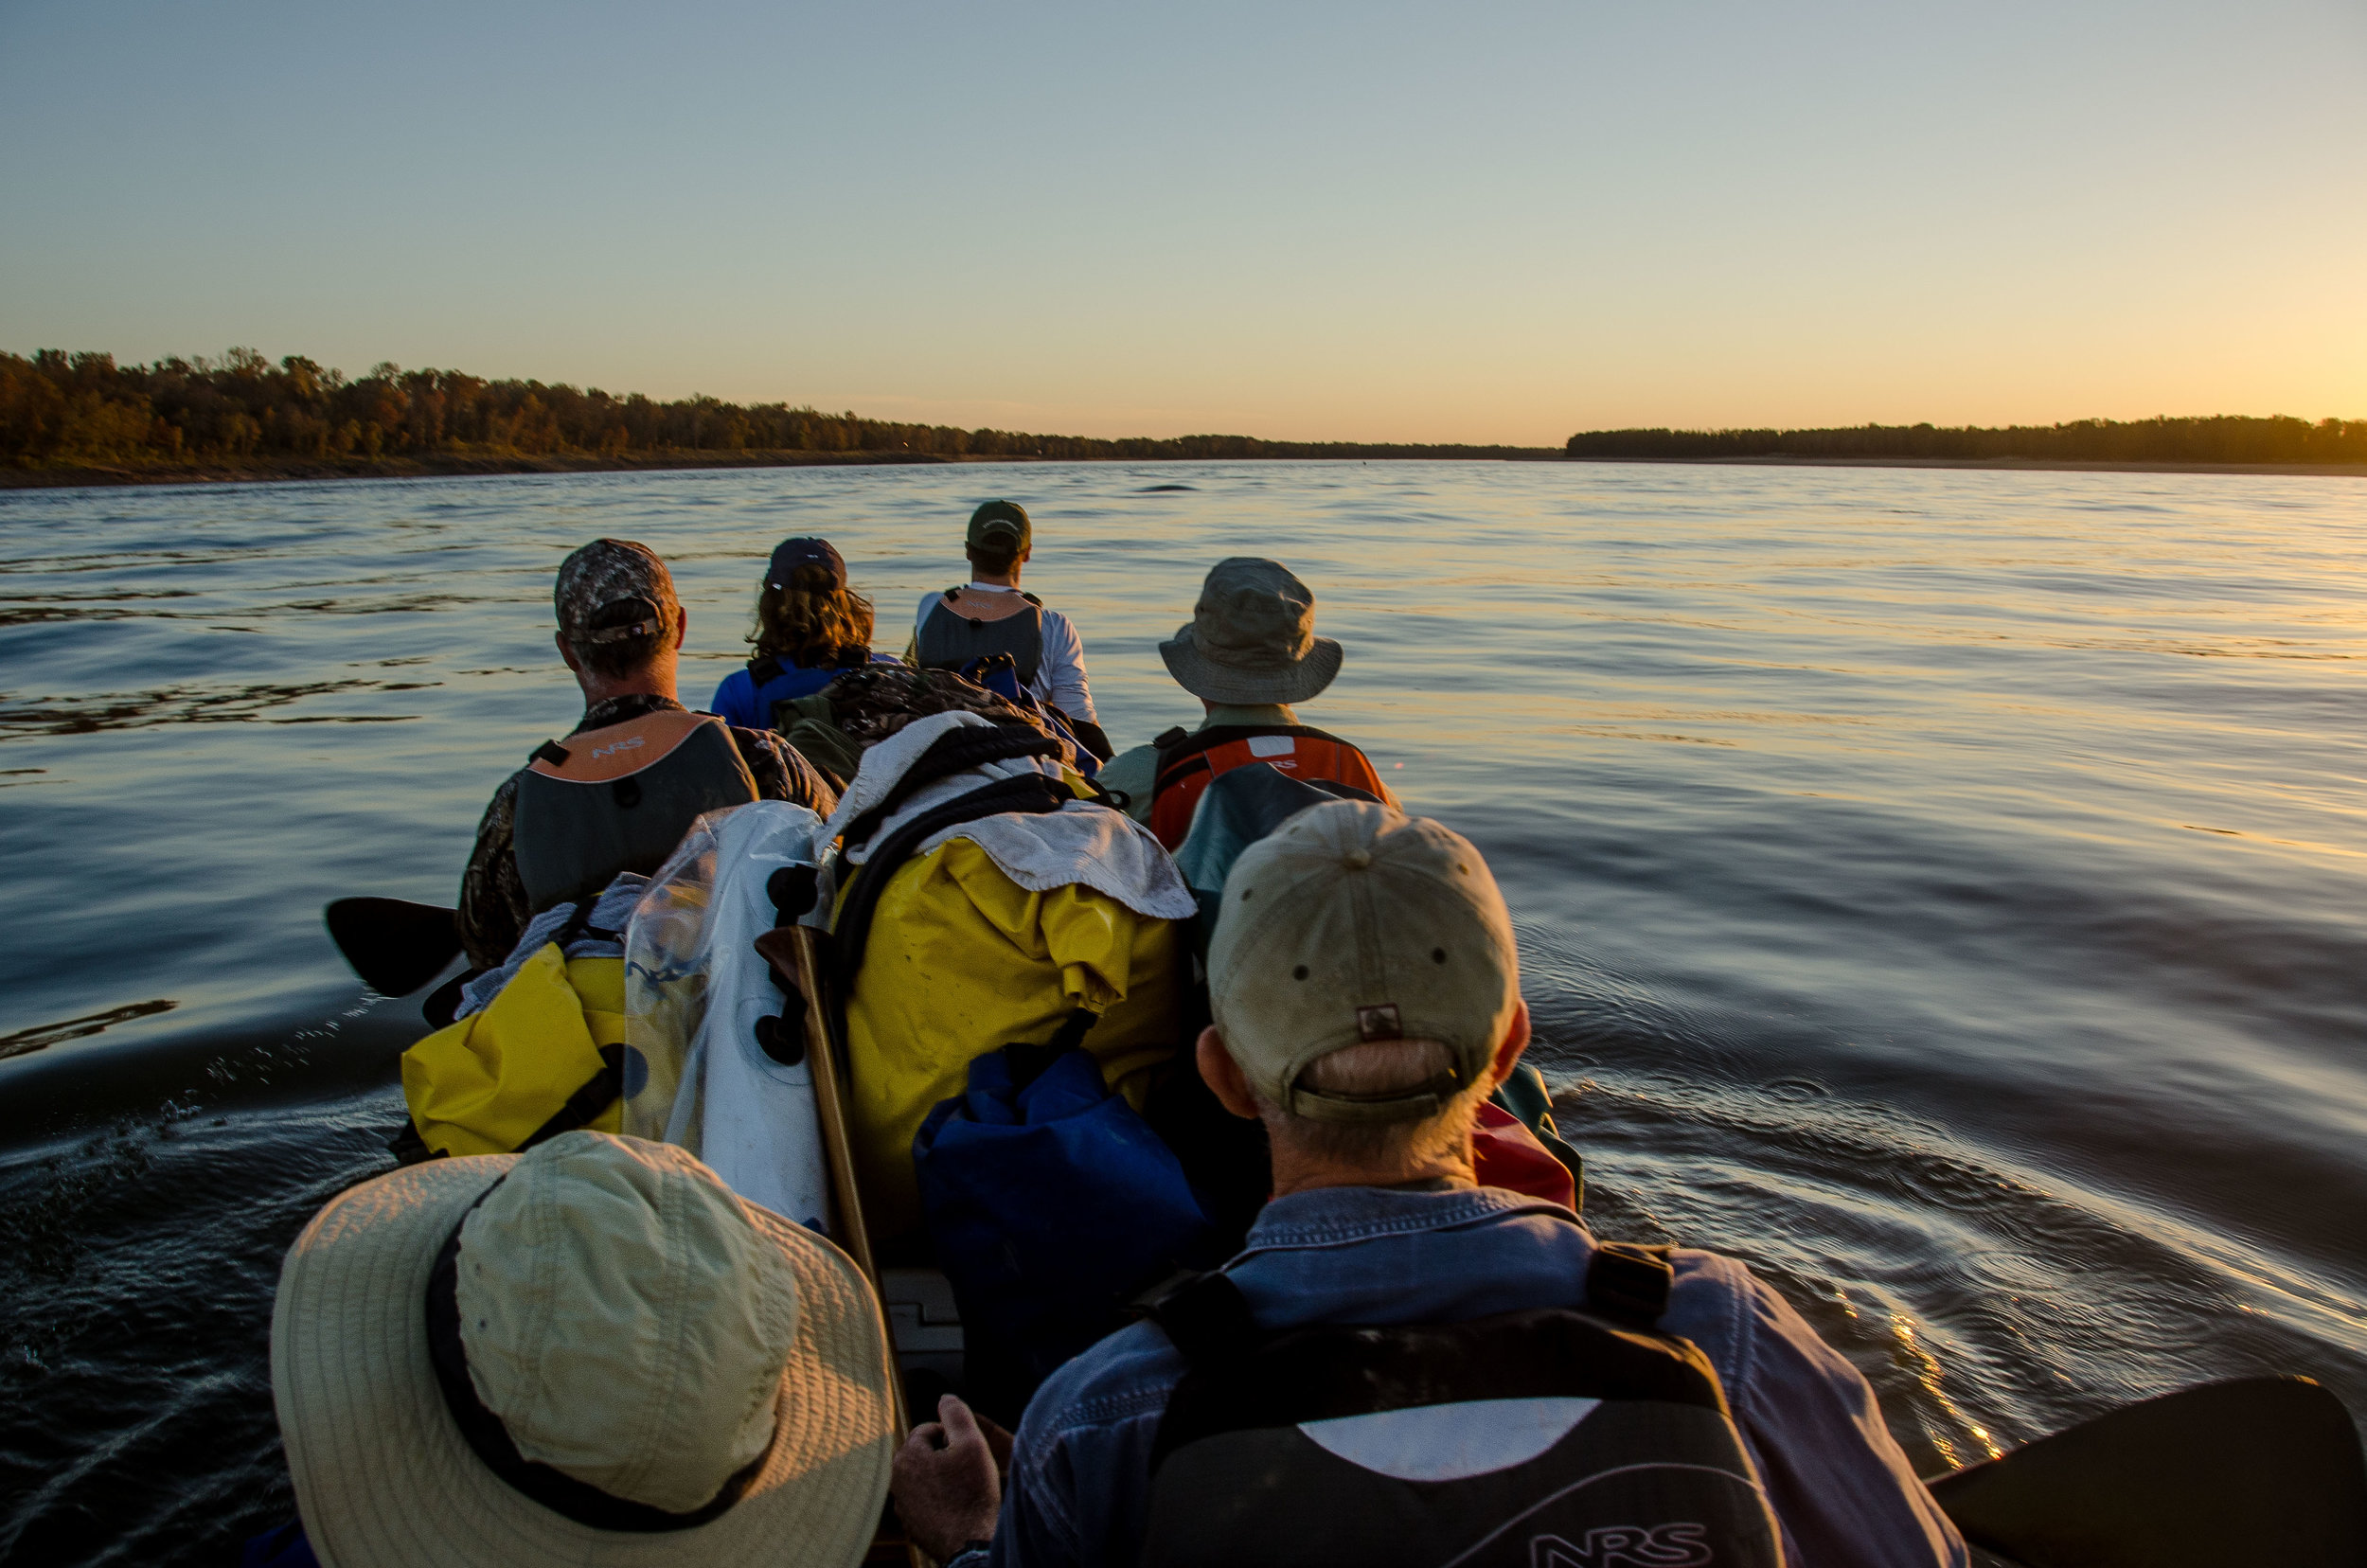 Paddling at dusk, from the author's first experience in a big canoe and on the Mississippi River in 2013. Photo Credit: John Ruskey.